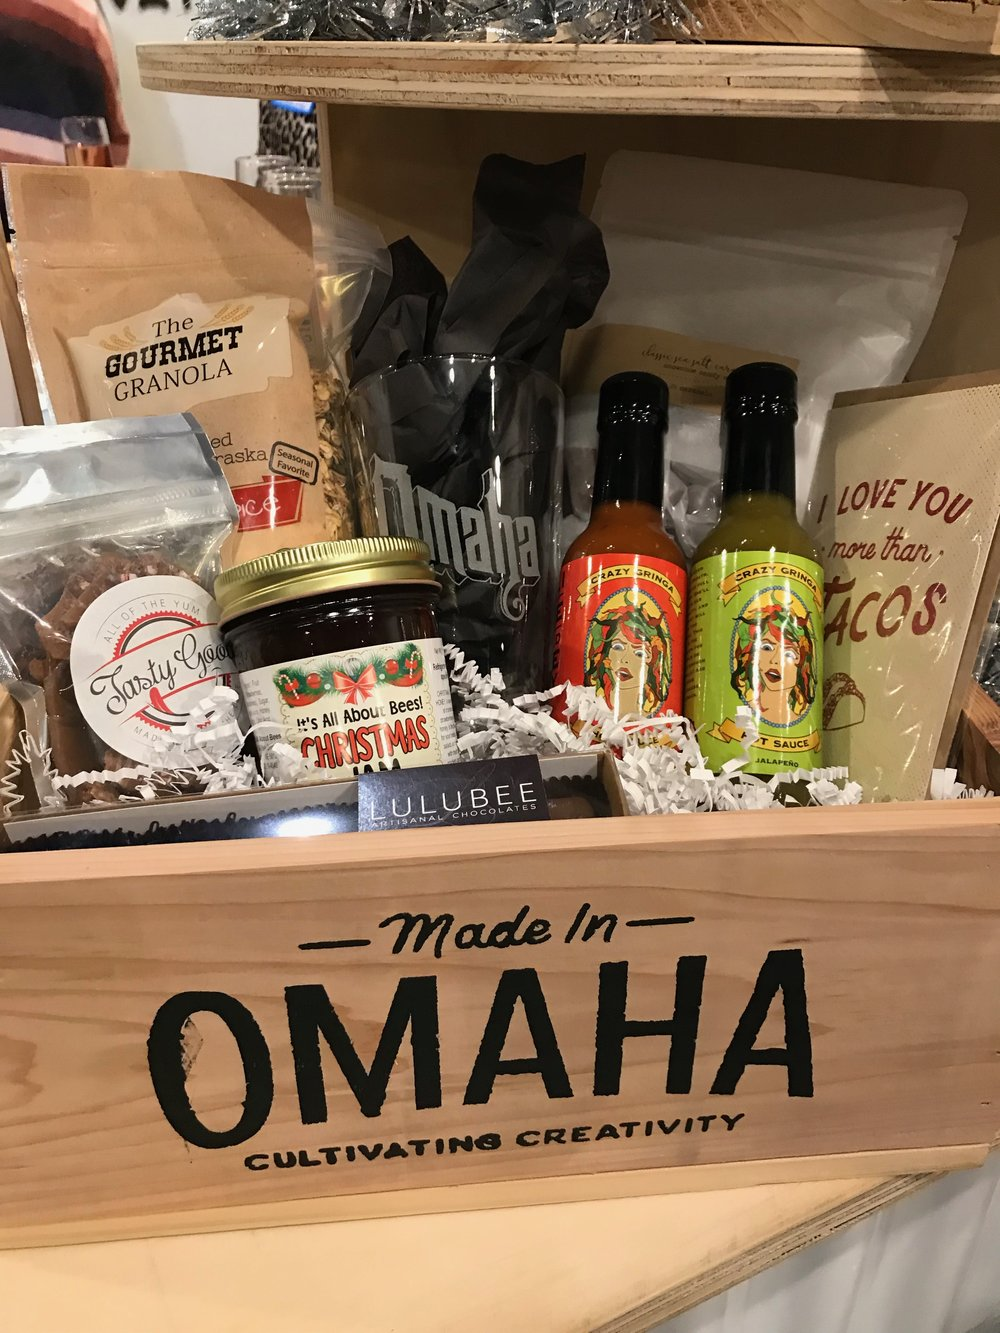 A Made in Omaha custom gift box for the gourmand includes locally made jam, granola, hot sauce, toffee, chocolates and other treats.